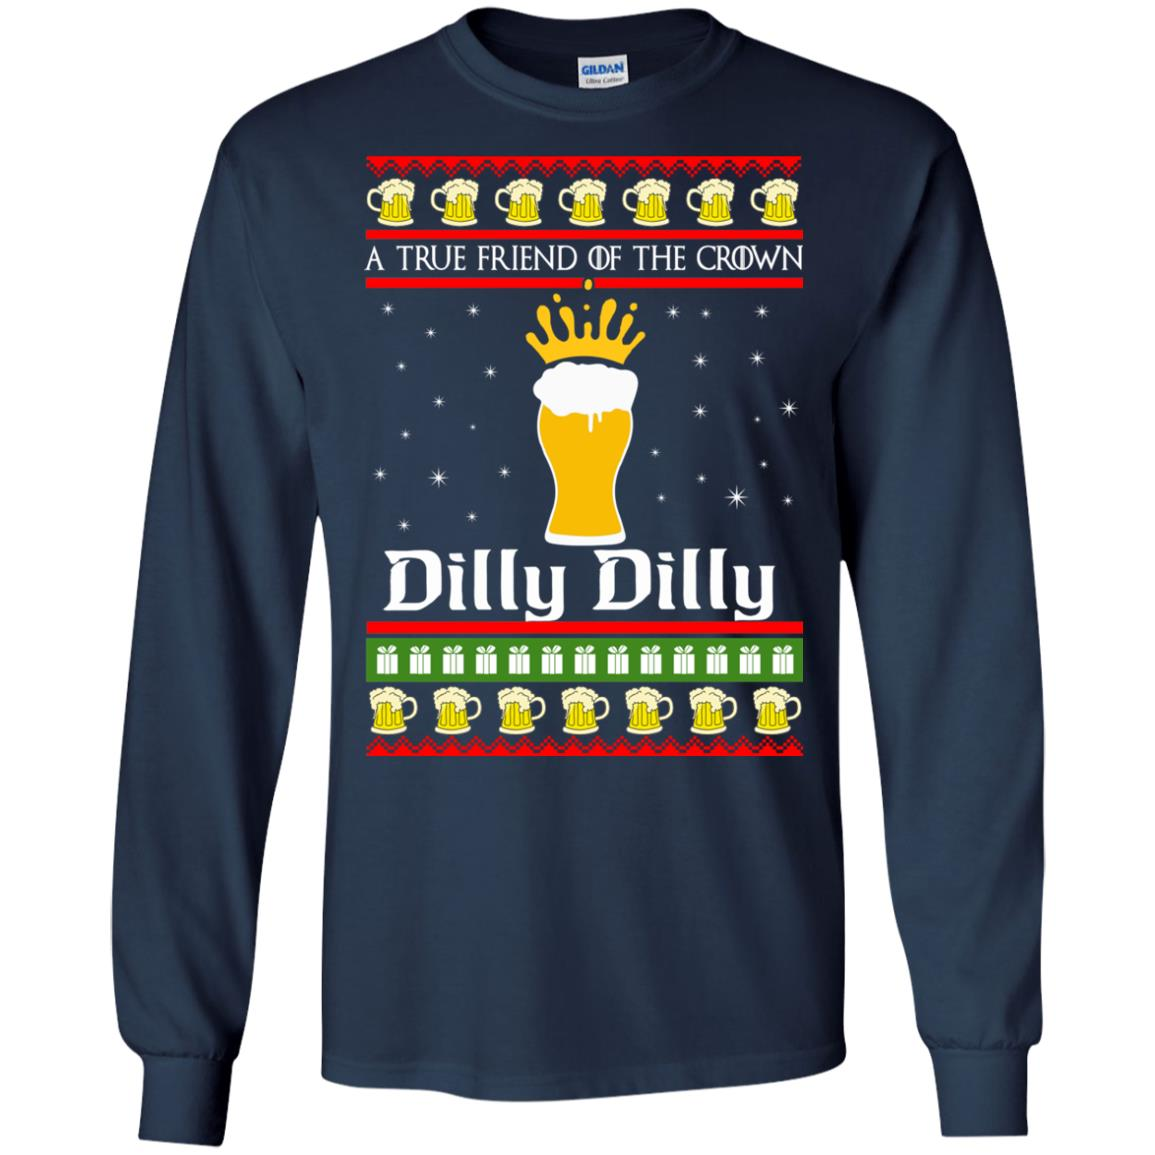 image 6321 - A True Friend Of The Crown Dilly Dilly Christmas Sweater, Hoodie